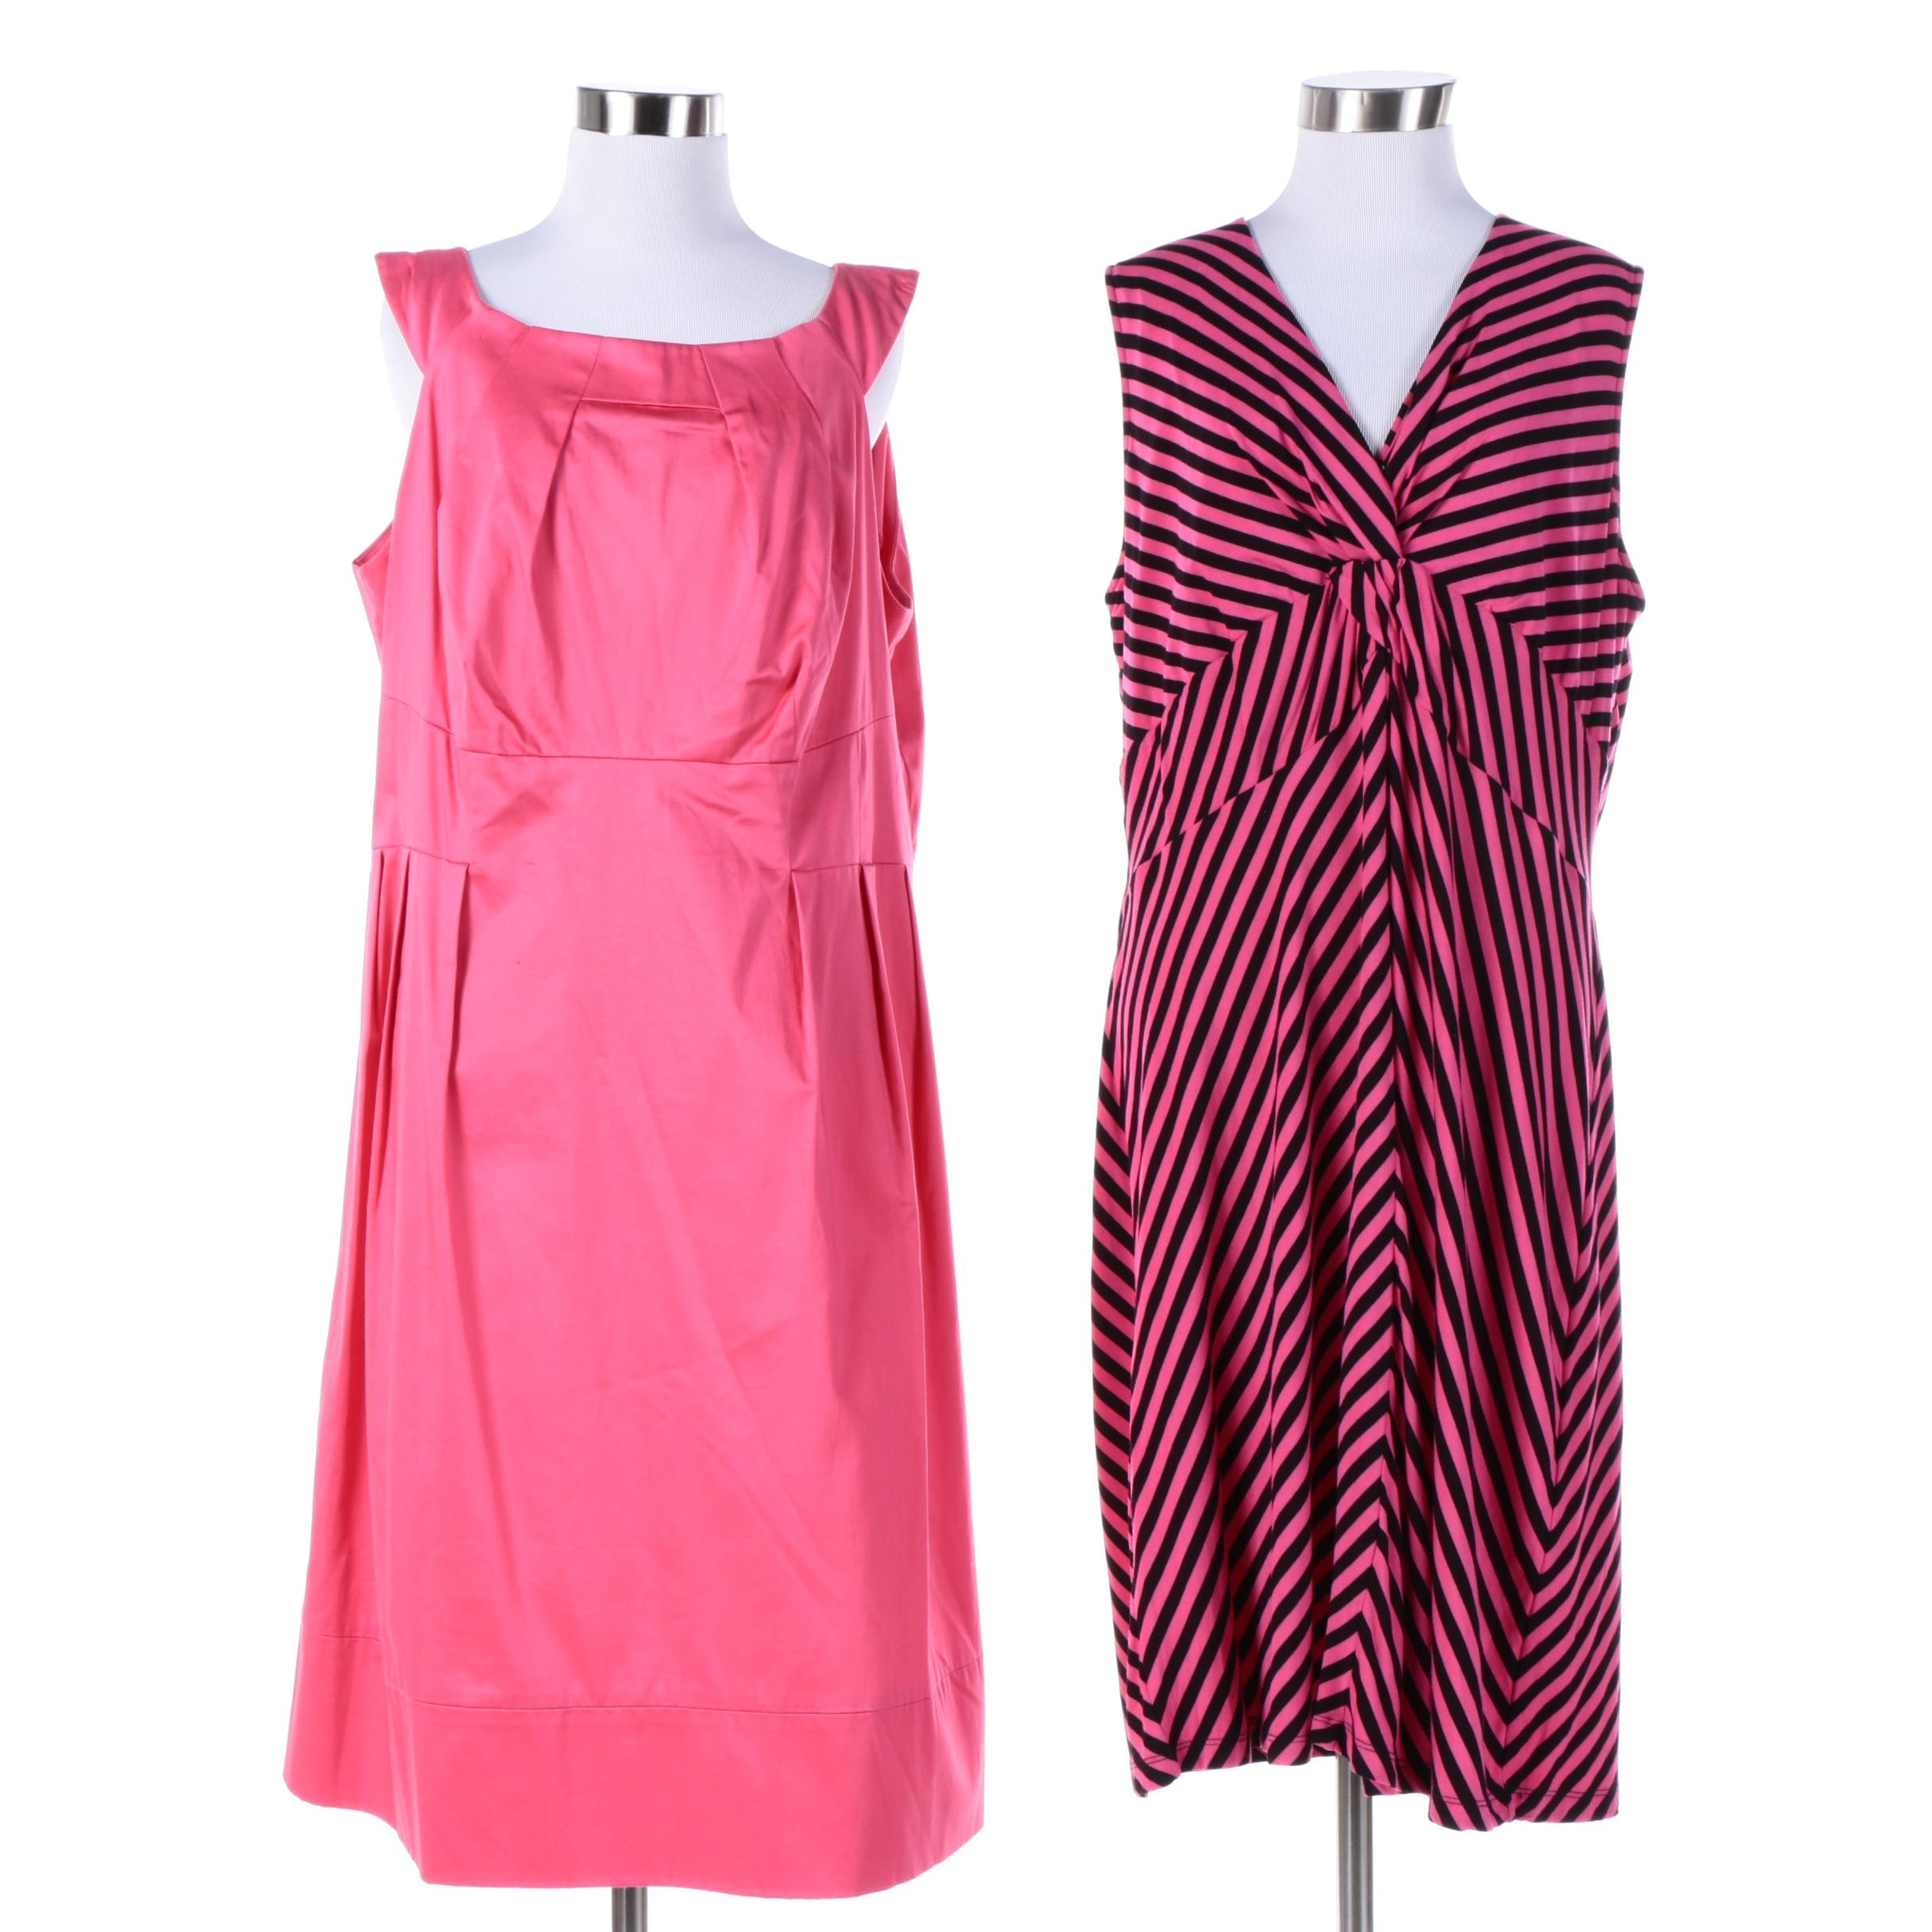 Calvin Klein and Peter Nygard Sleeveless Dresses